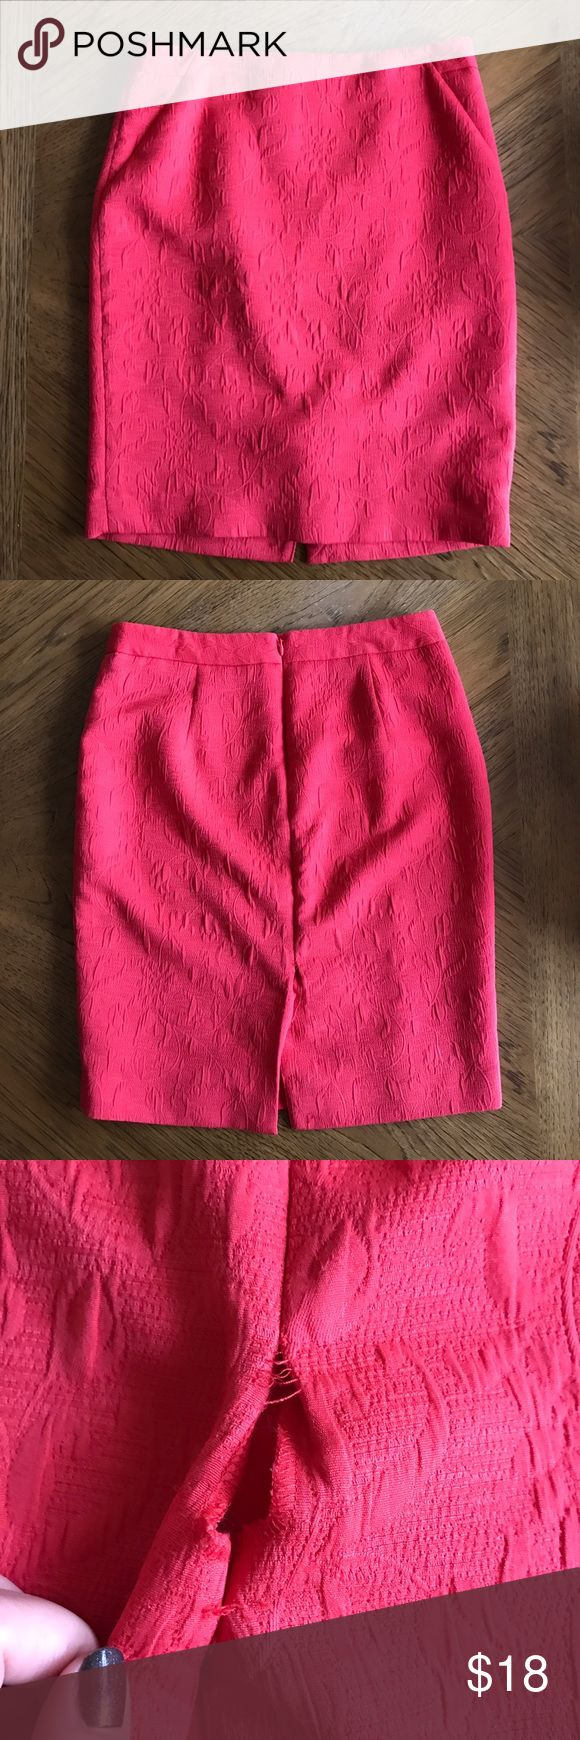 The Limited Coral Pencil Skirt Beautiful, bright deep coral-colored pencil skirt with a lovely design. Slight tear at the slot in the back but could be easily repaired. Zipper in the back of the skirt. The Limited Skirts Pencil